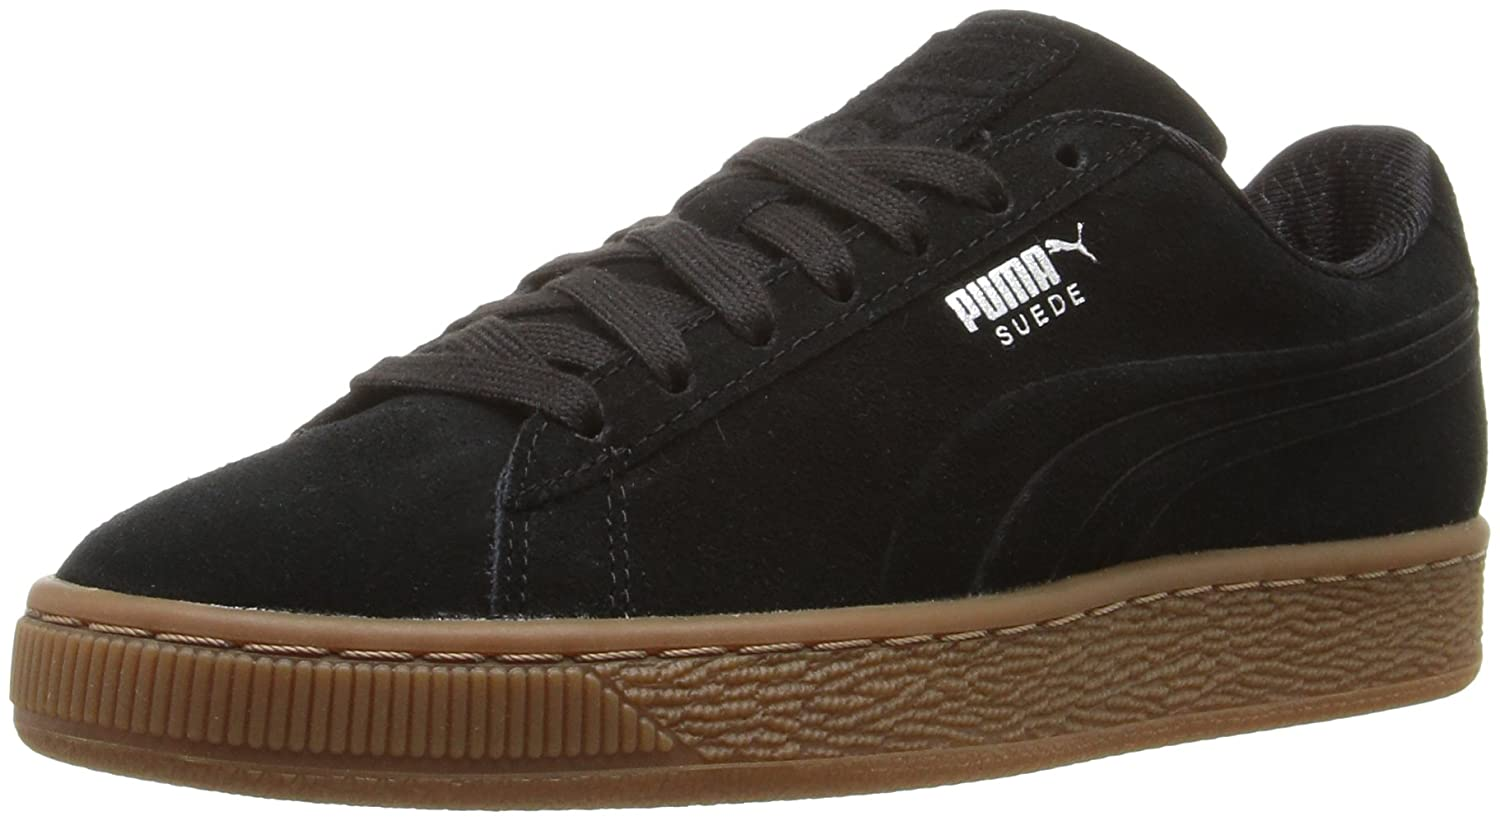 Puma Up Suede Classic Debossed Mens schwarz Suede Lace Up Puma Turnschuhe schuhe 11 90e5a1